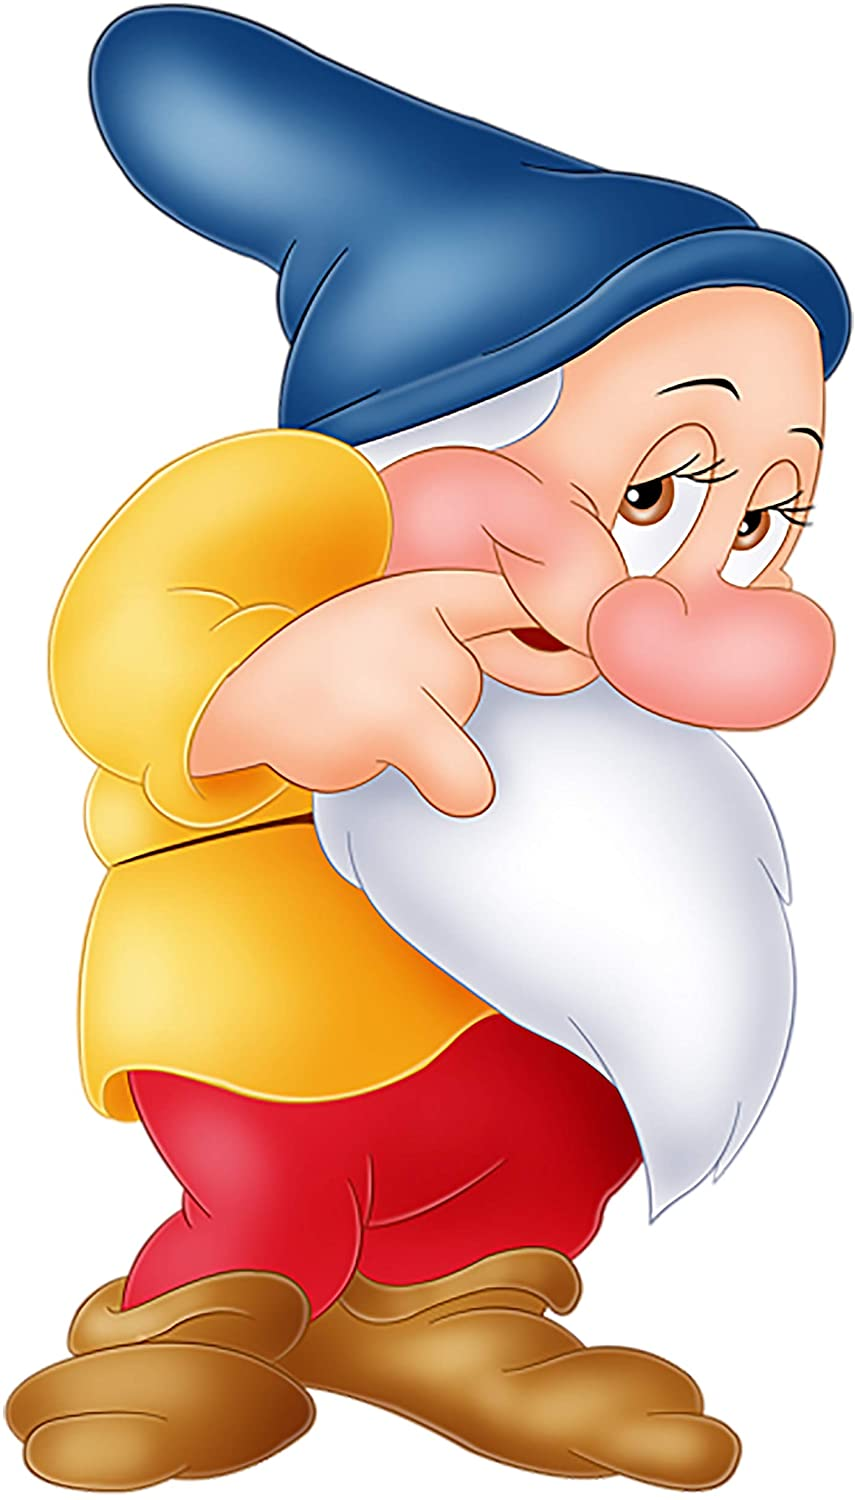 Disney-Seven Dwarfs Decal Sticker